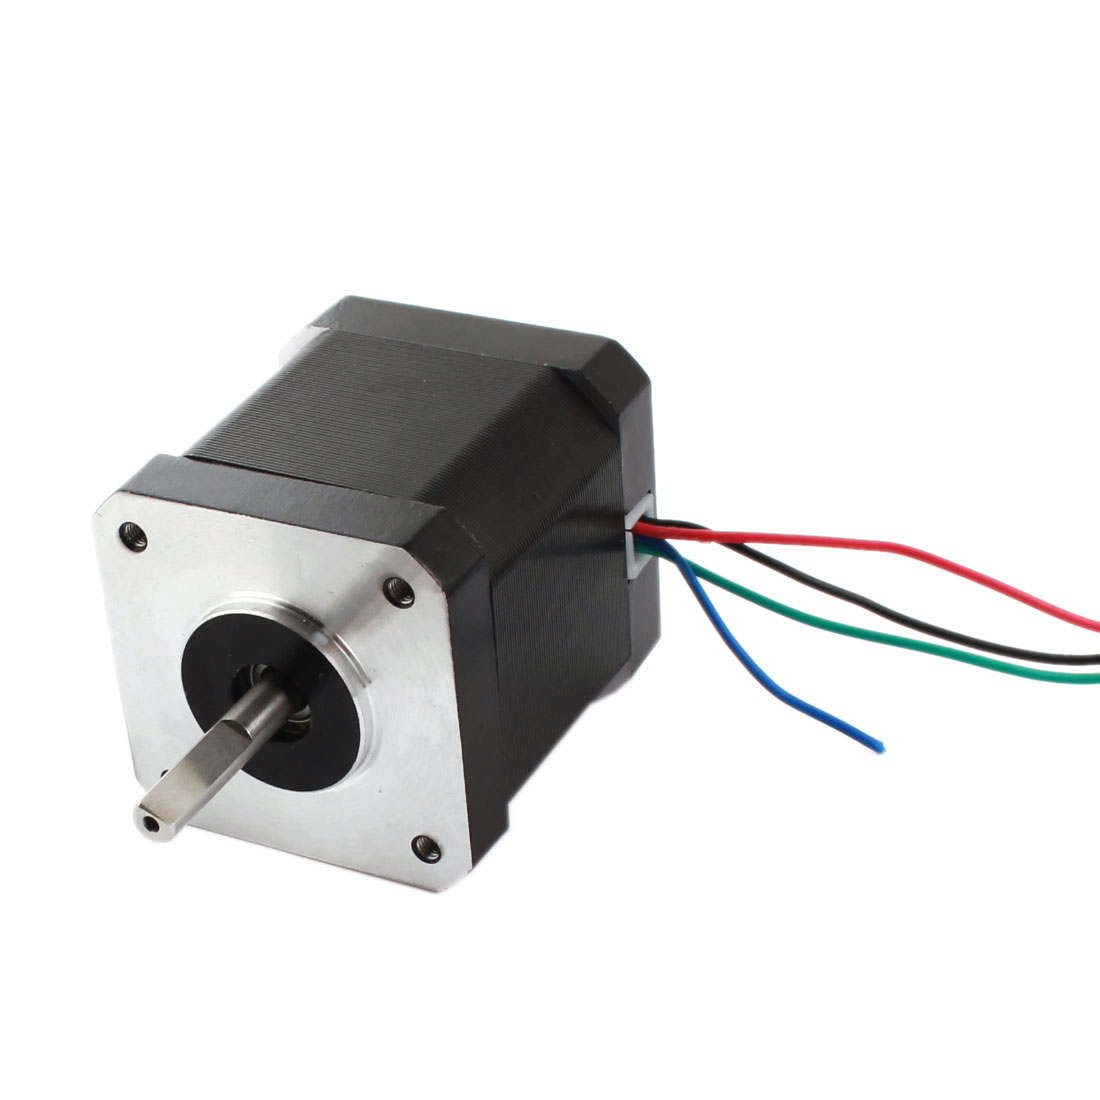 Nema17 4 Lead CNC Router Robot Stepping Stepper Motor 42mm 1.5A 34oz.in